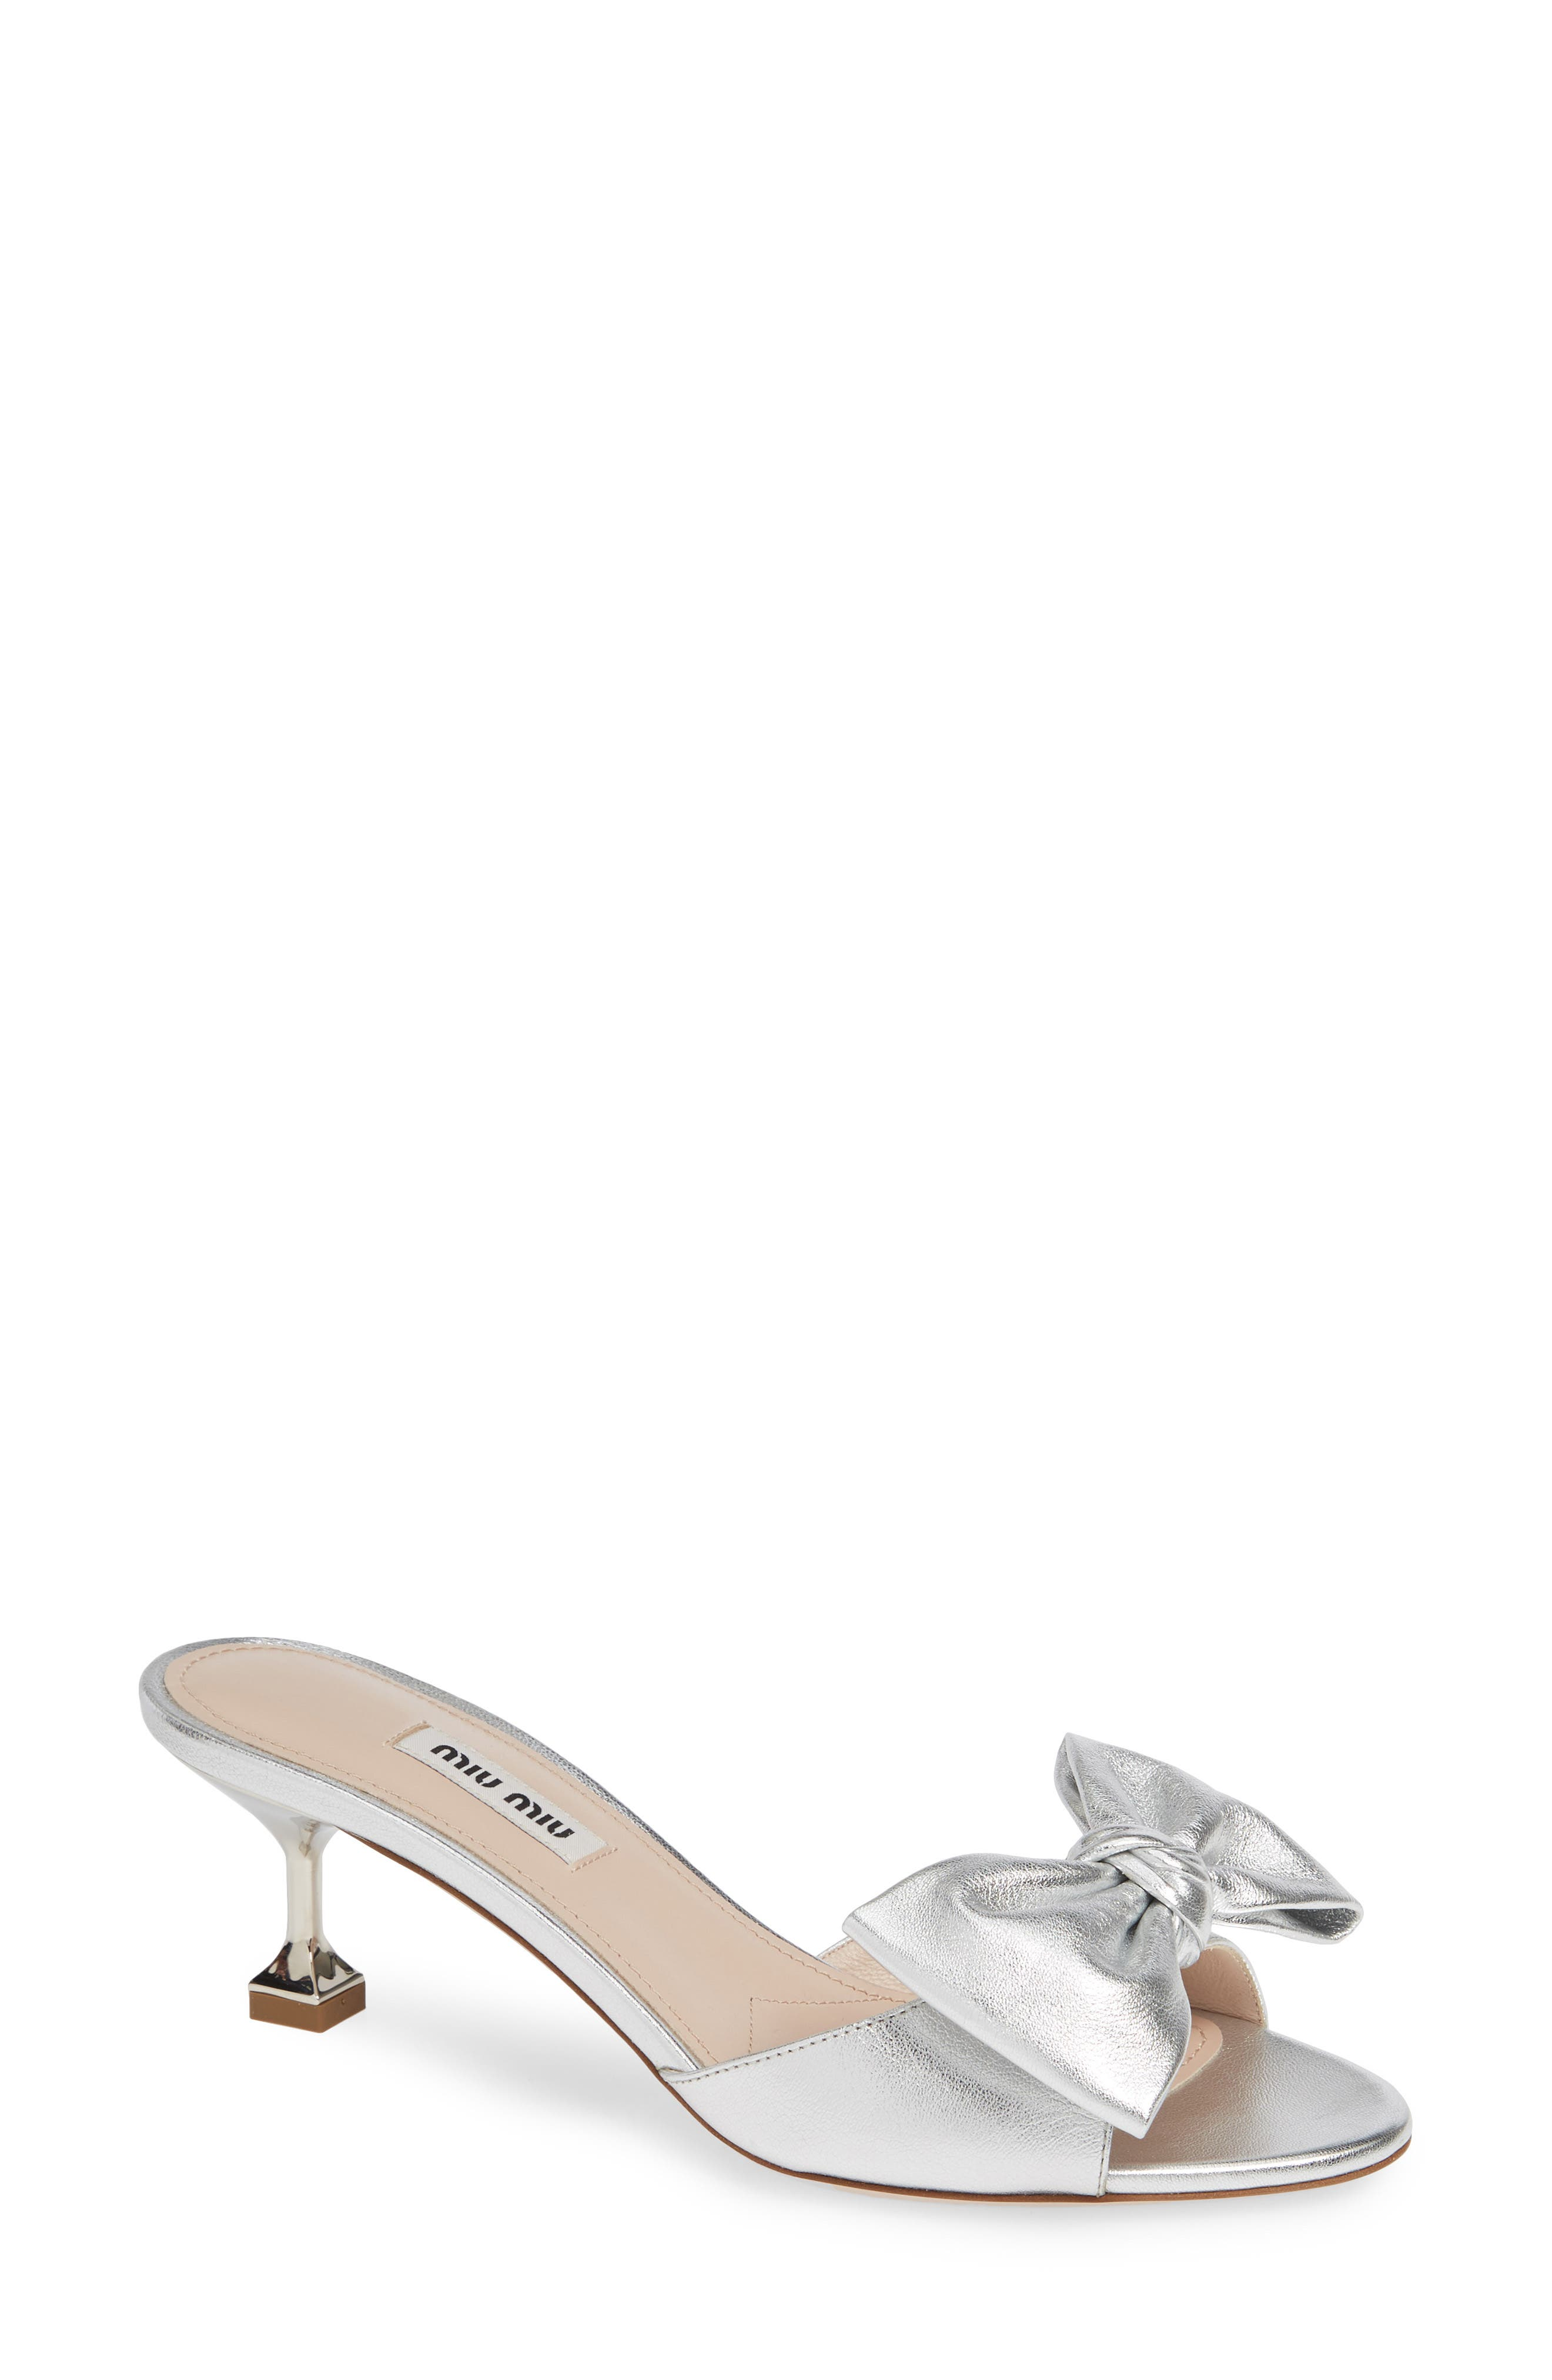 Bow Slide Sandal, Main, color, SILVER